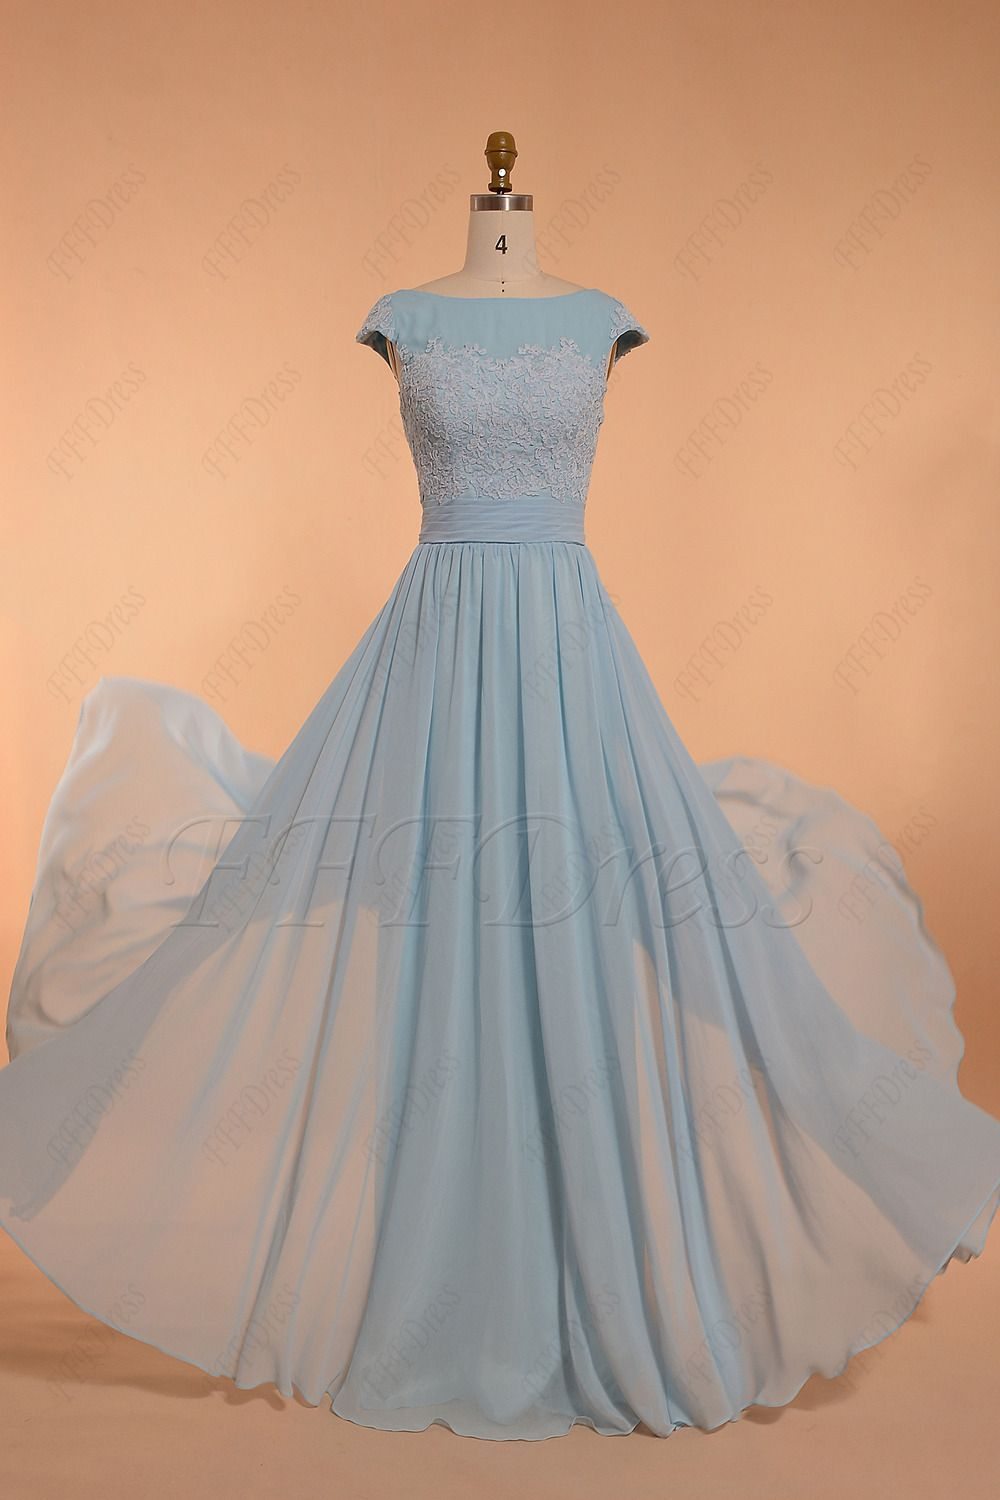 Modest light blue bridesmaid dress bridesmaid dresses pinterest